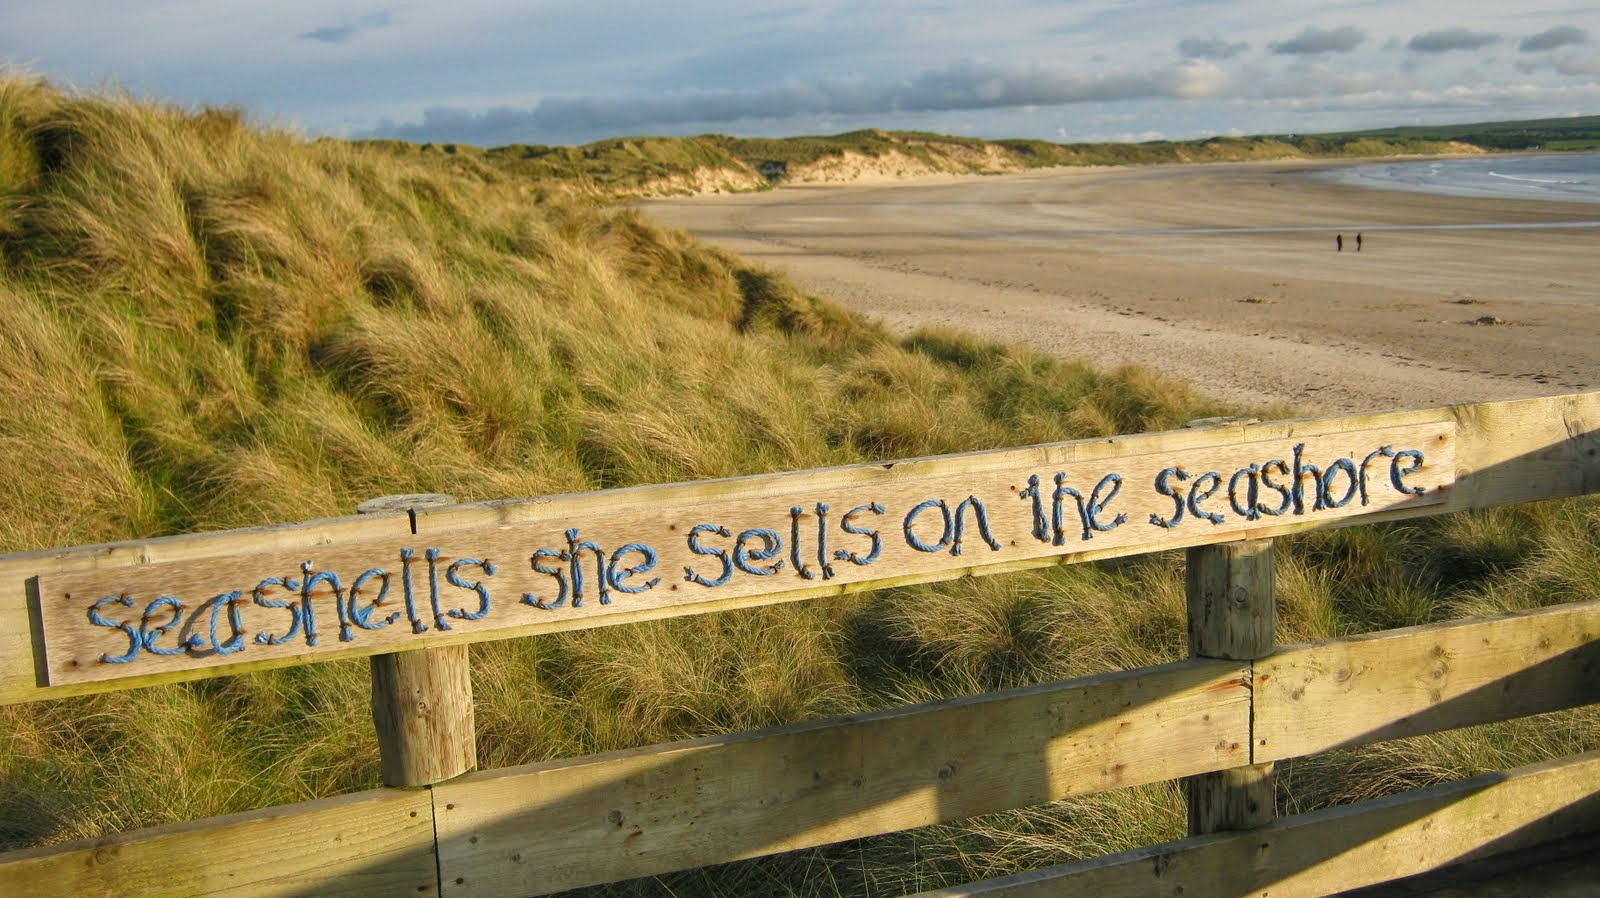 Beaches in Scotland, Dunnet Beach, Caithness, She sells seashells on the seashore, quotes about the sea, quotes about the beach, Old Shore Moor Beach, West coast scotland, where to visit in scotland, visit scotland, discover scotland